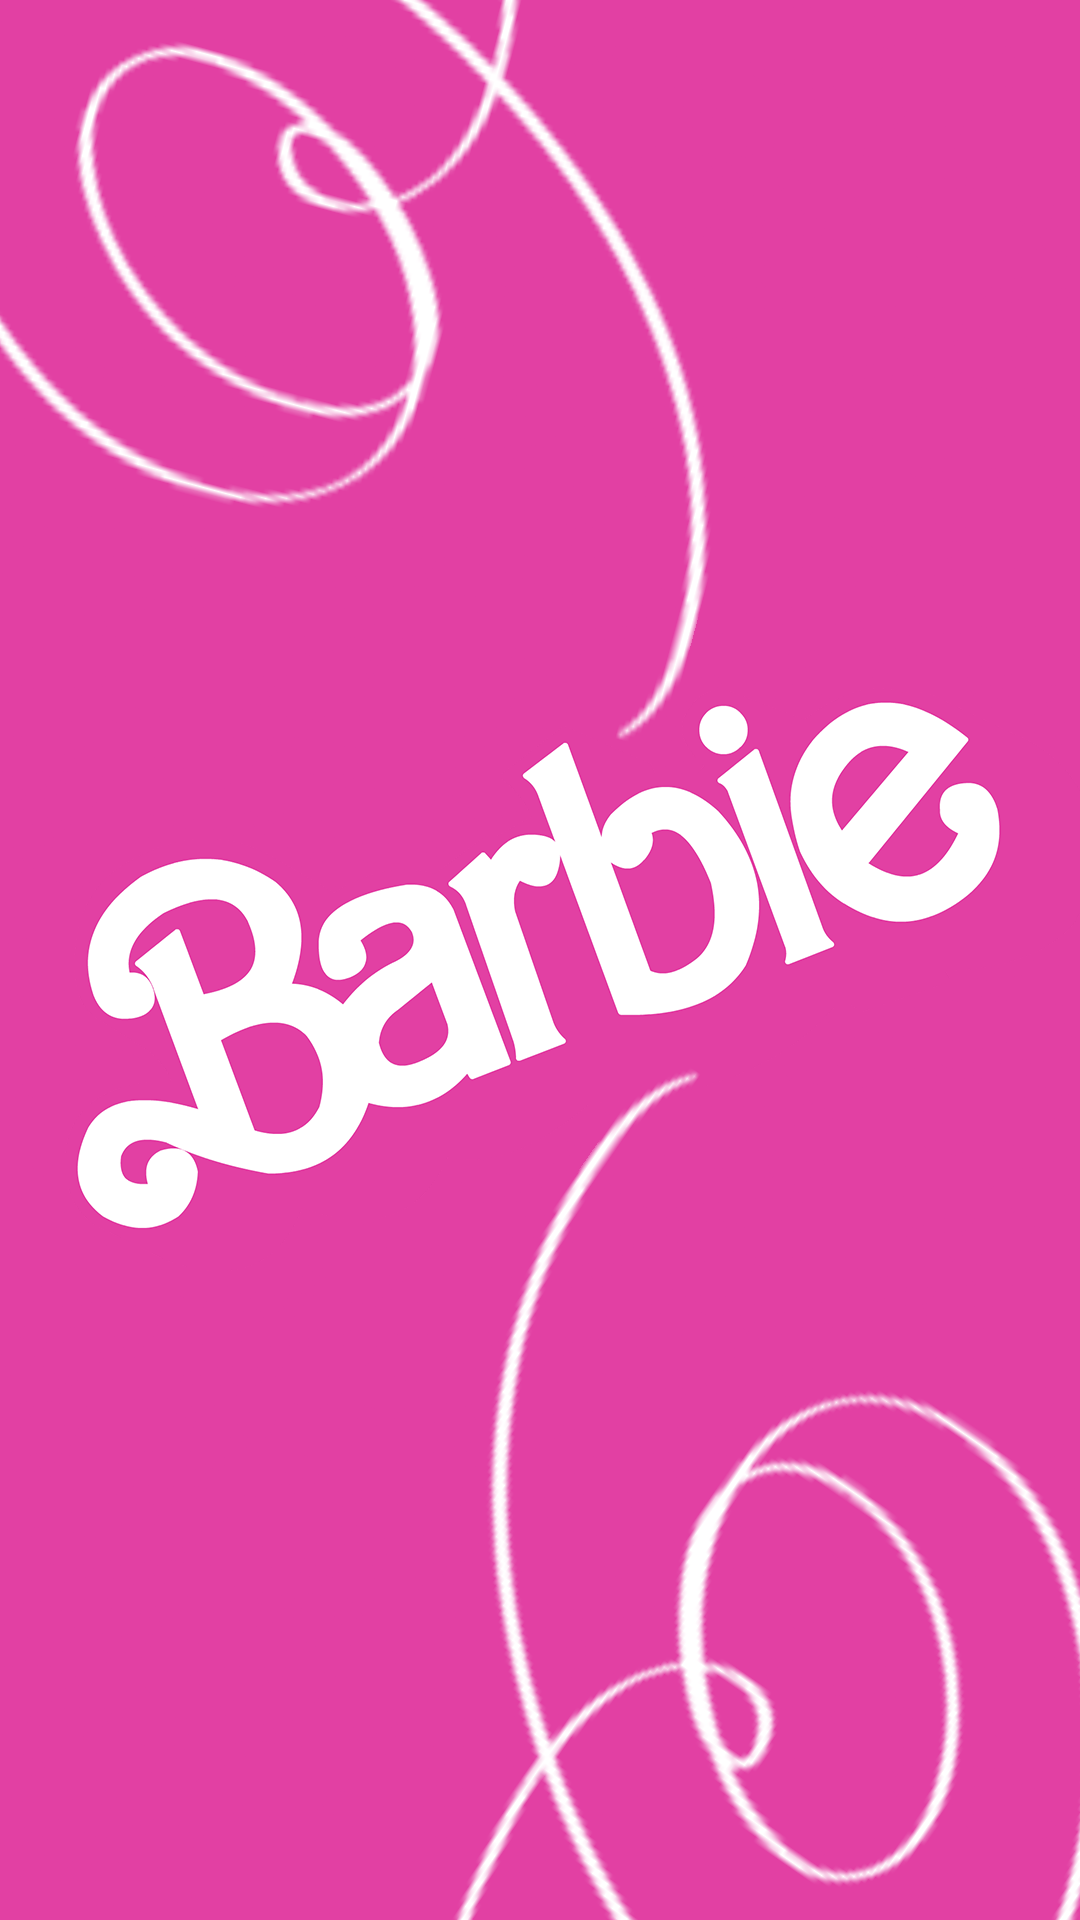 Barbie Girl 1080 X 1920 FHD Wallpaper